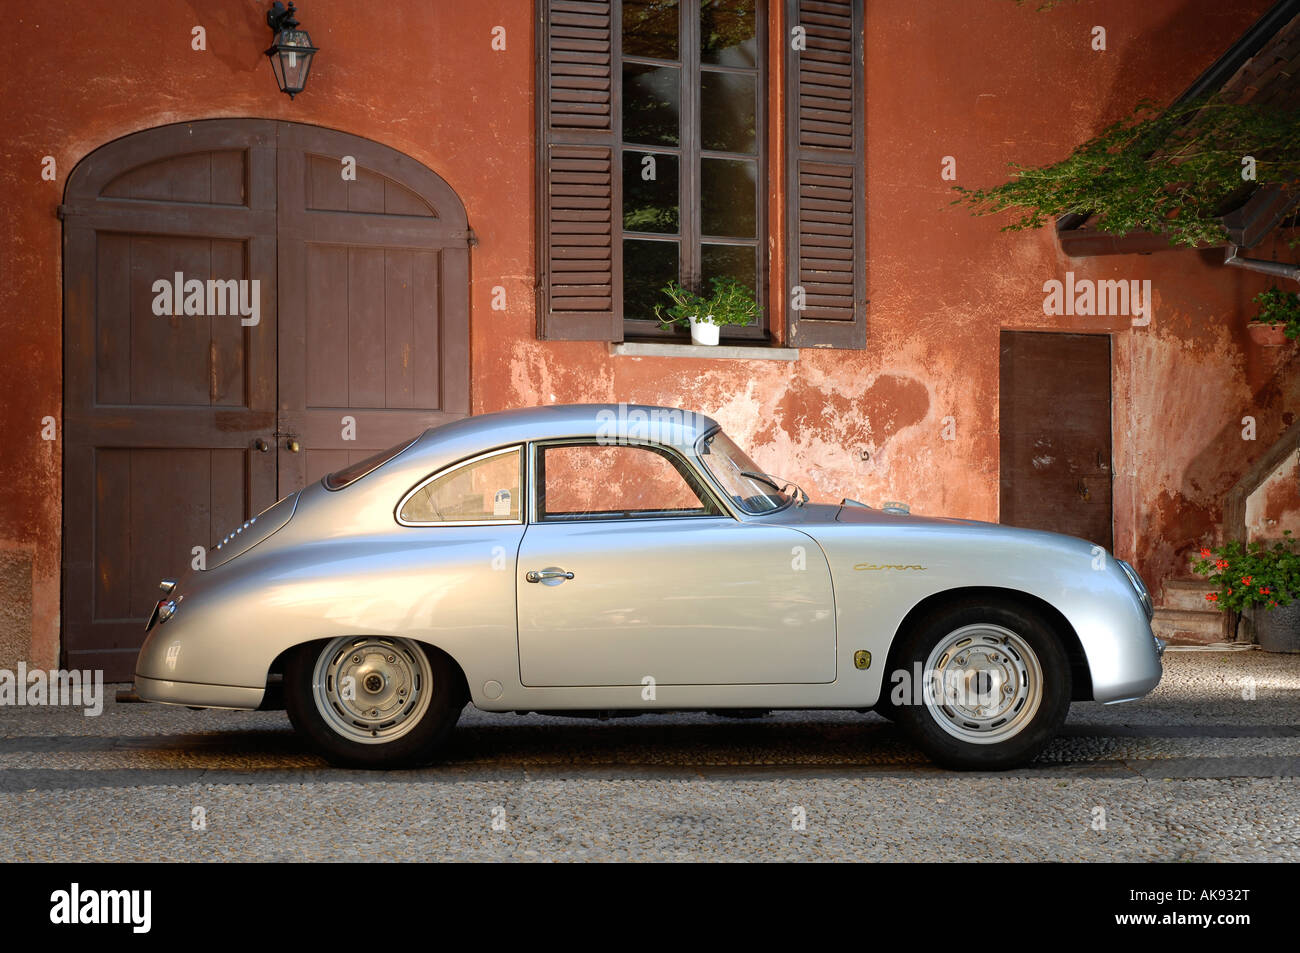 1956 Porsche 356 A 1599 GS Carrera - Stock Image